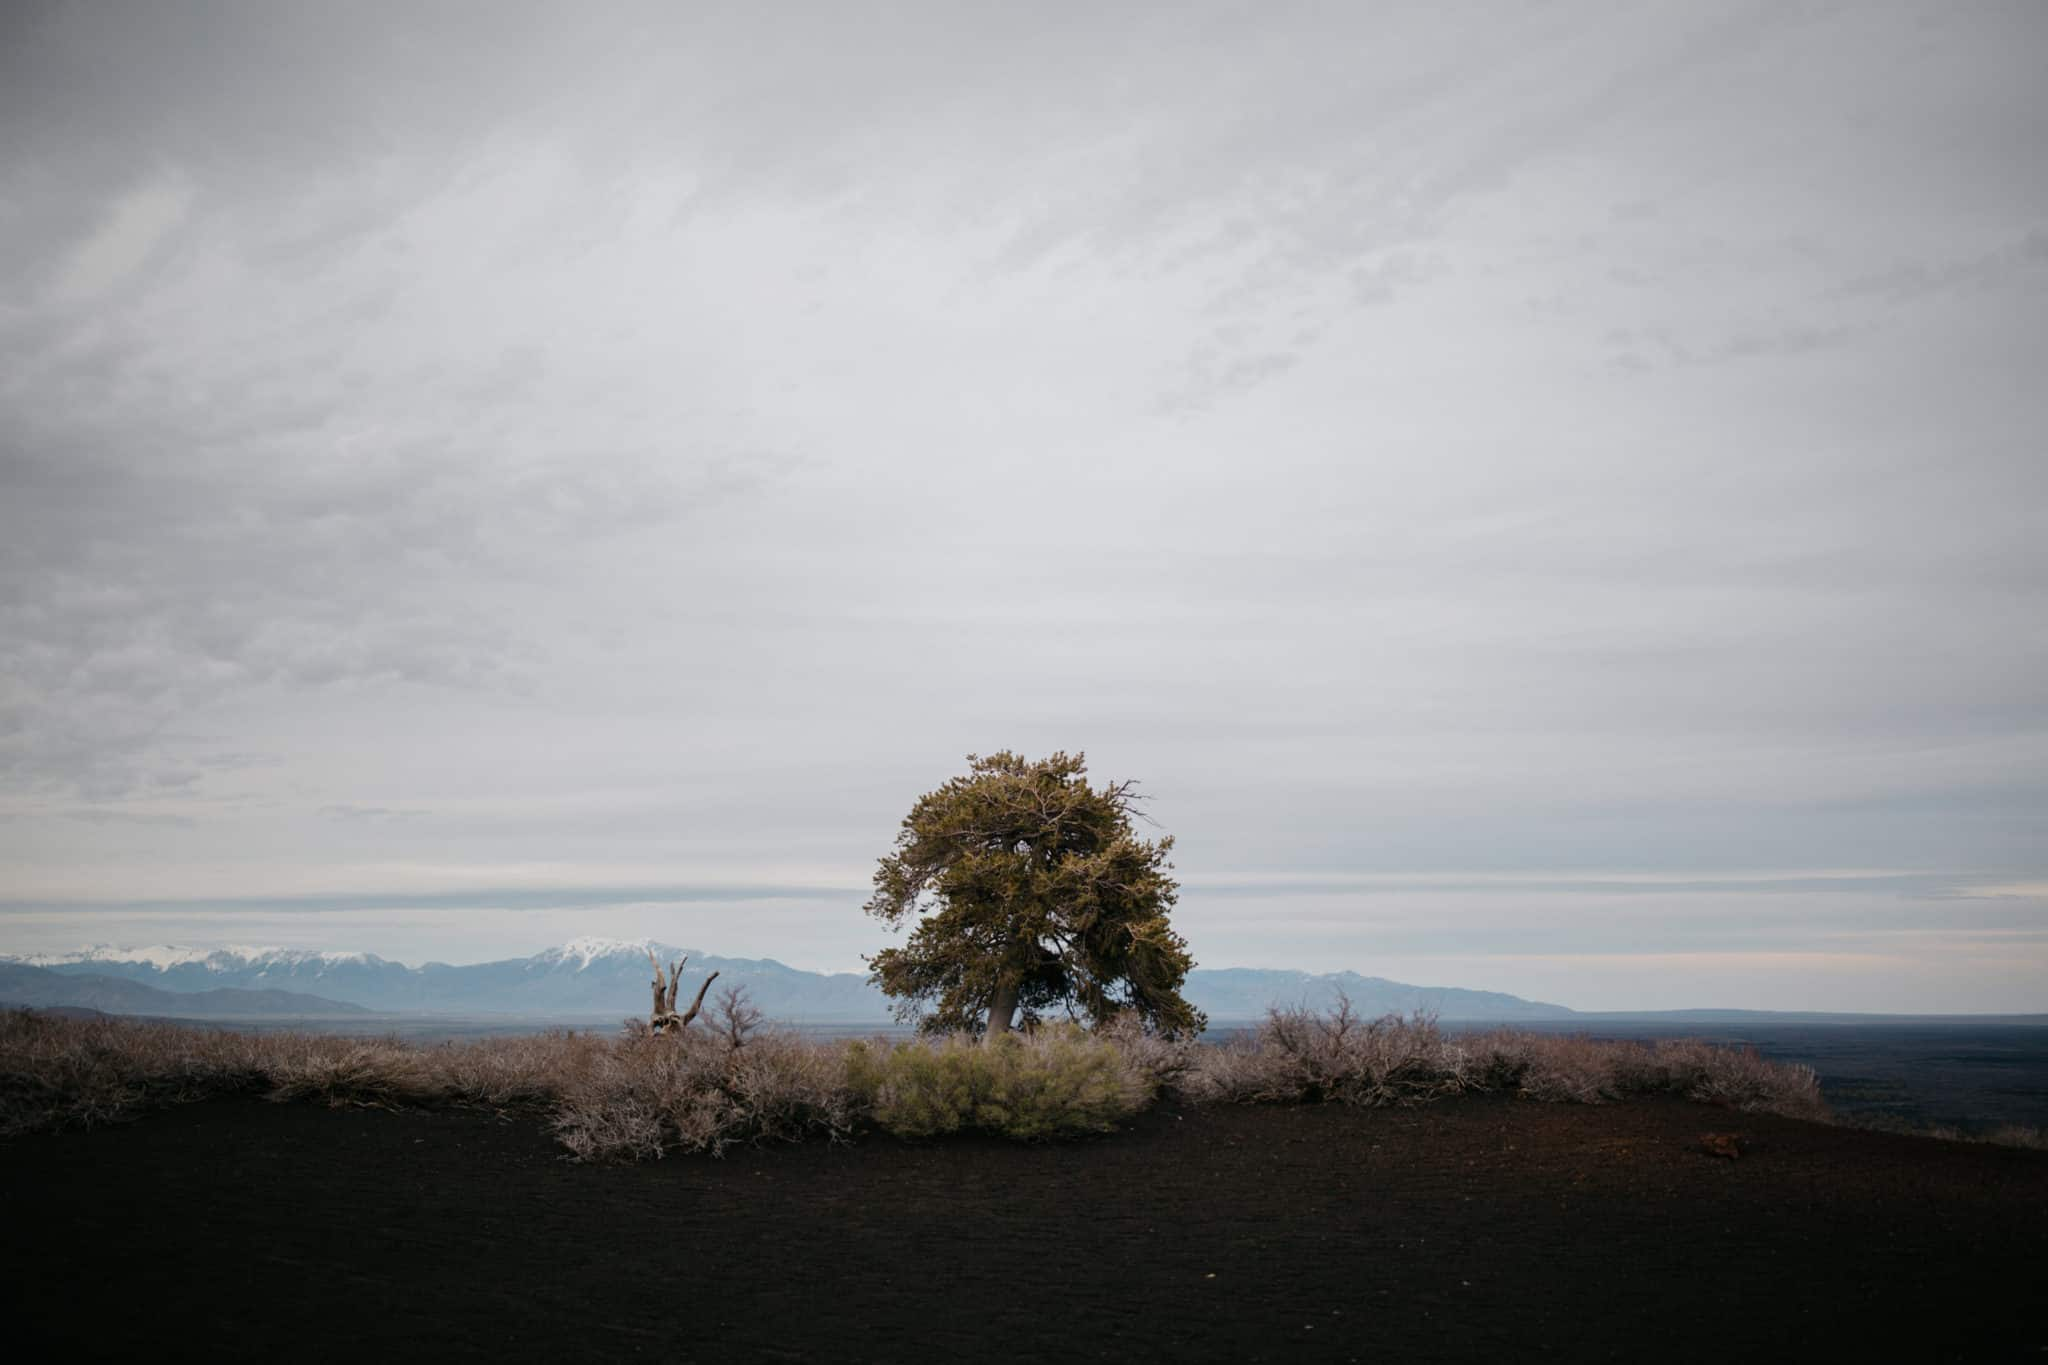 Lone tree at Craters Of The Moon National Preserve